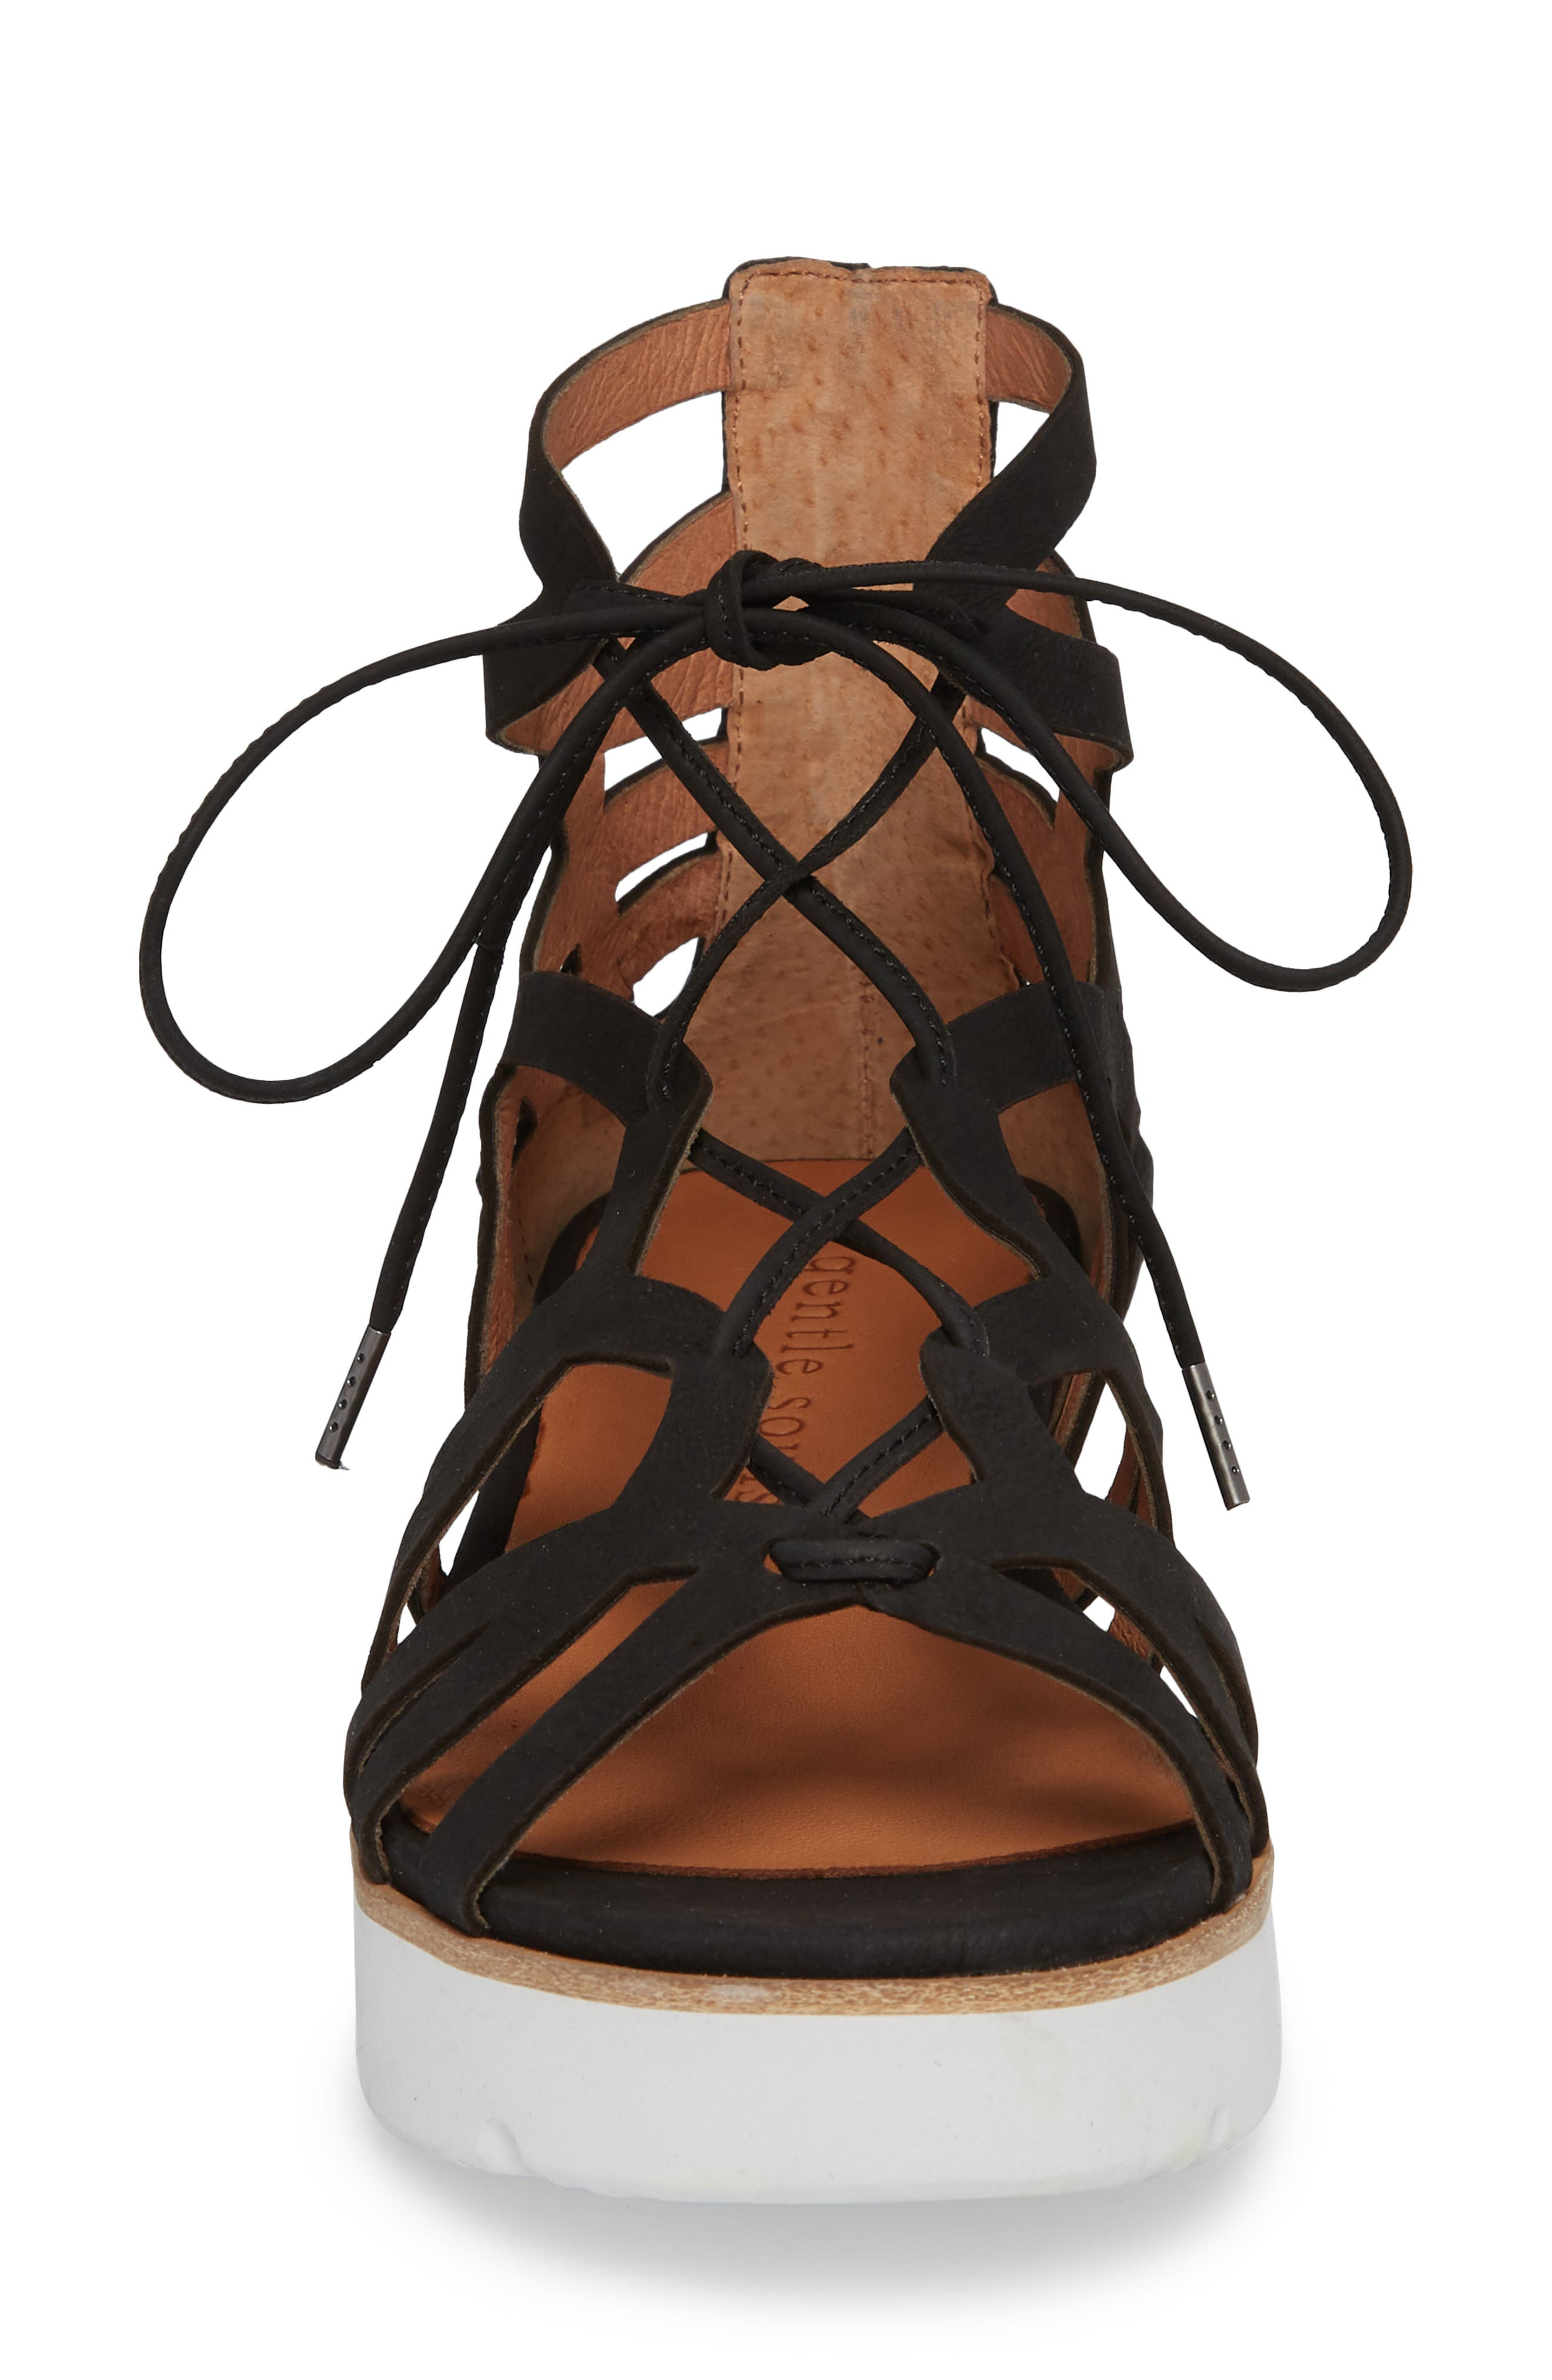 GENTLE SOULS BY KENNETH COLE, Larina Lace-Up Sandal, Alternate thumbnail 4, color, BLACK NUBUCK